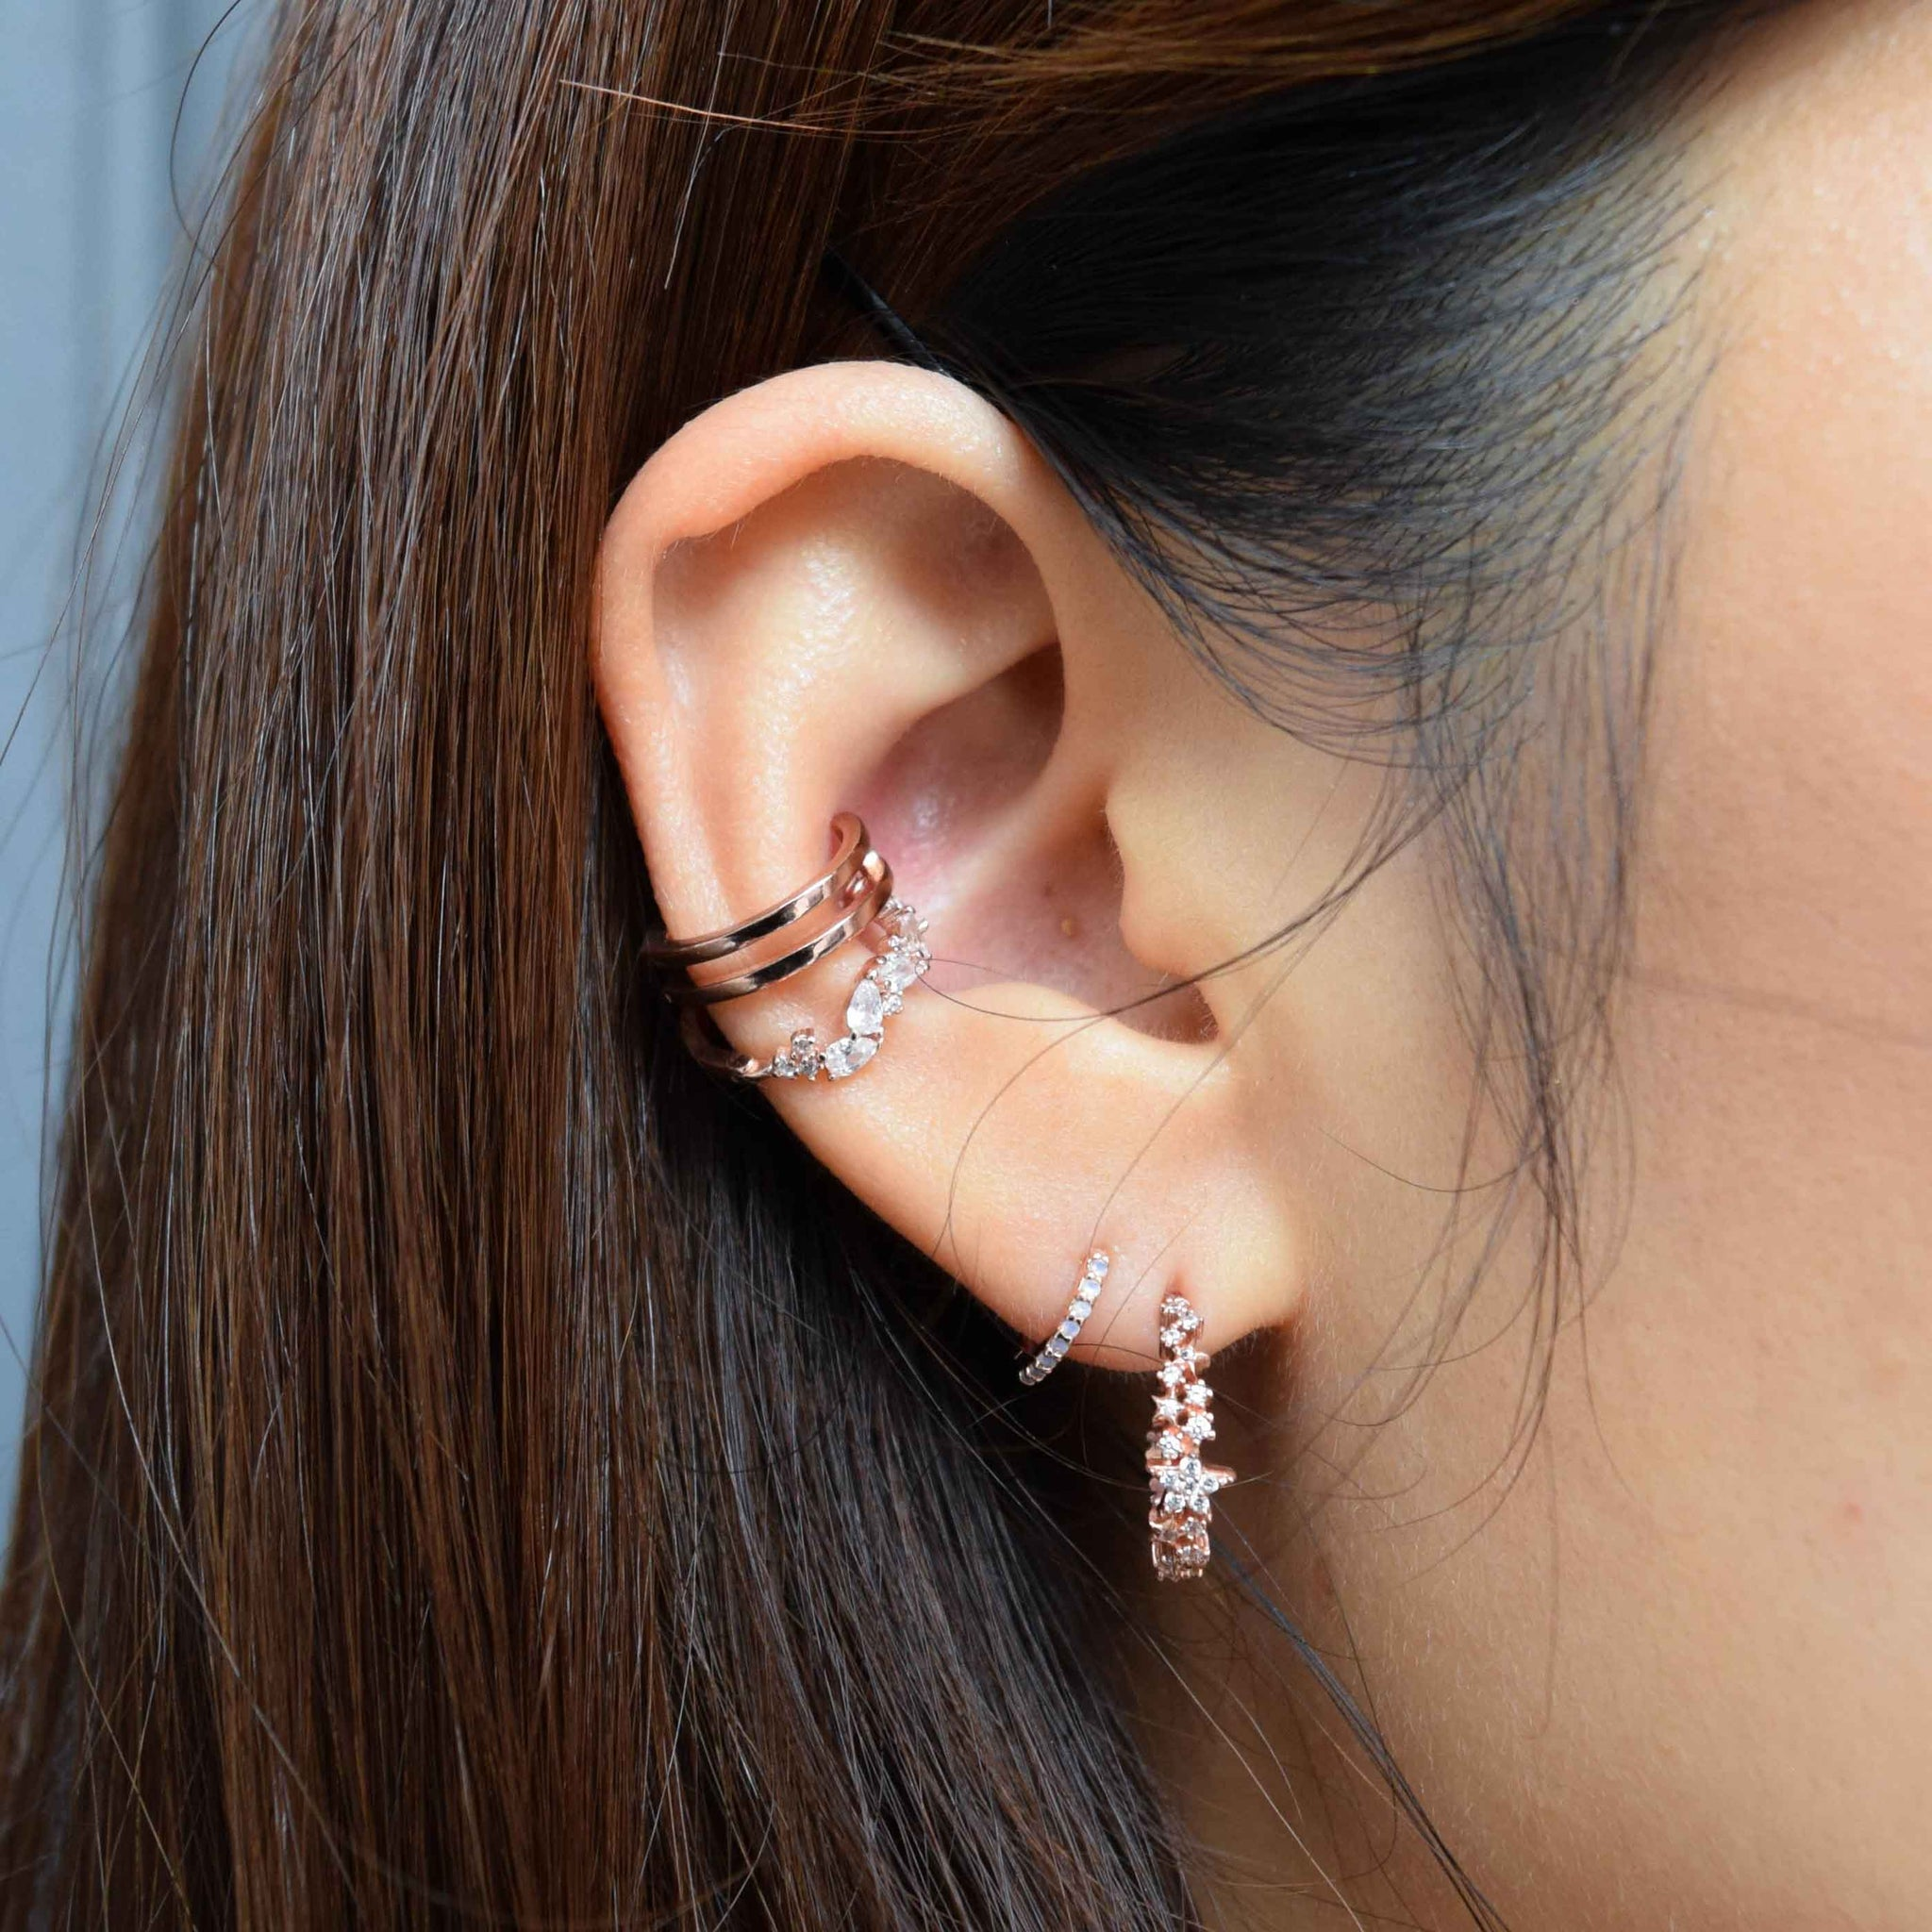 Teardrop Gem Conch Hoop in Rose Gold worn with ear cuff